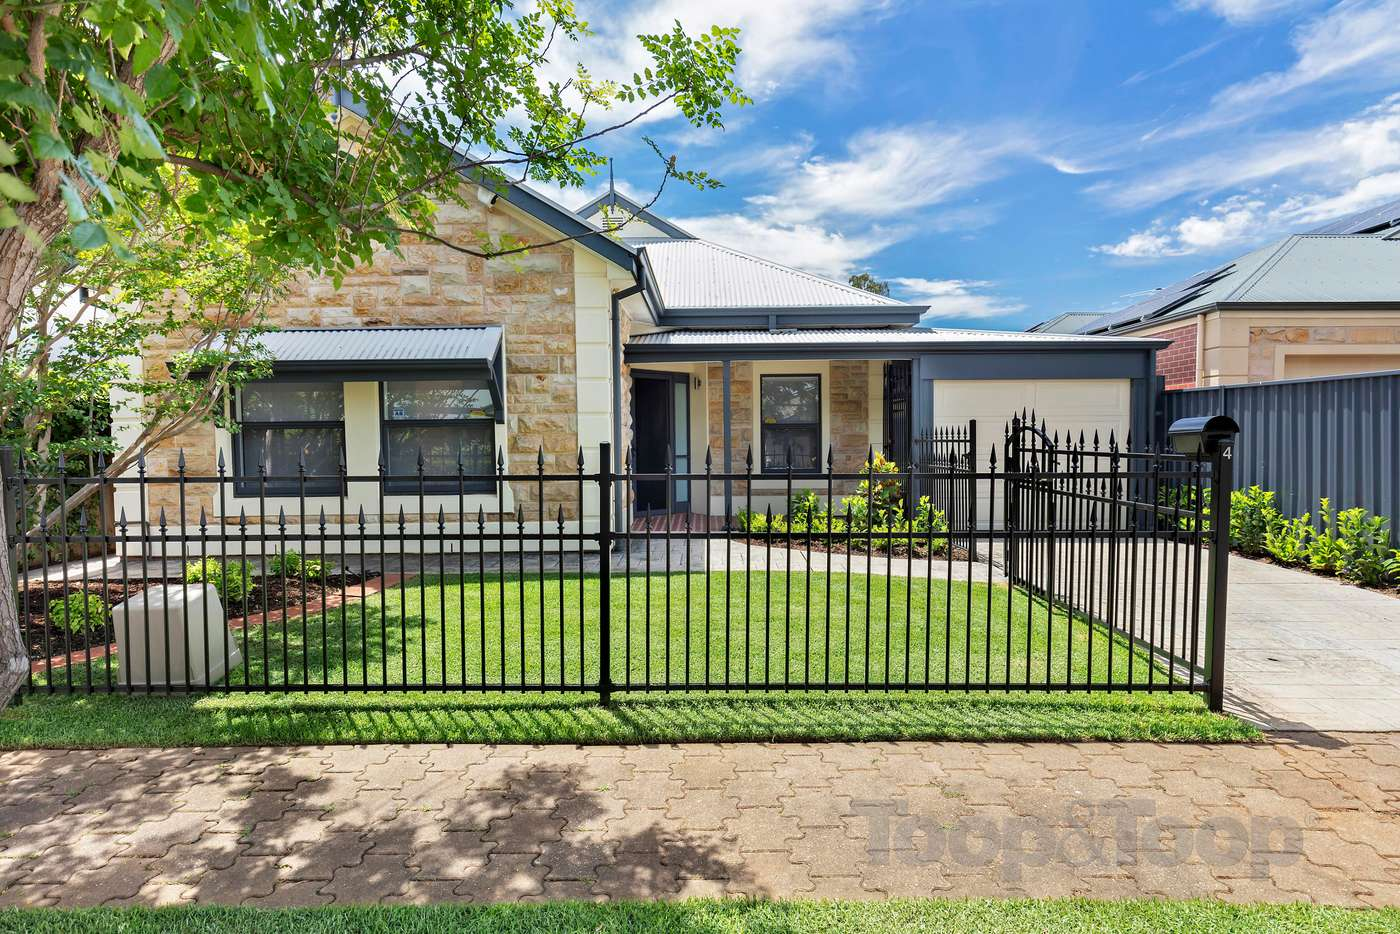 Main view of Homely house listing, 4 Wellesley Avenue, Evandale SA 5069